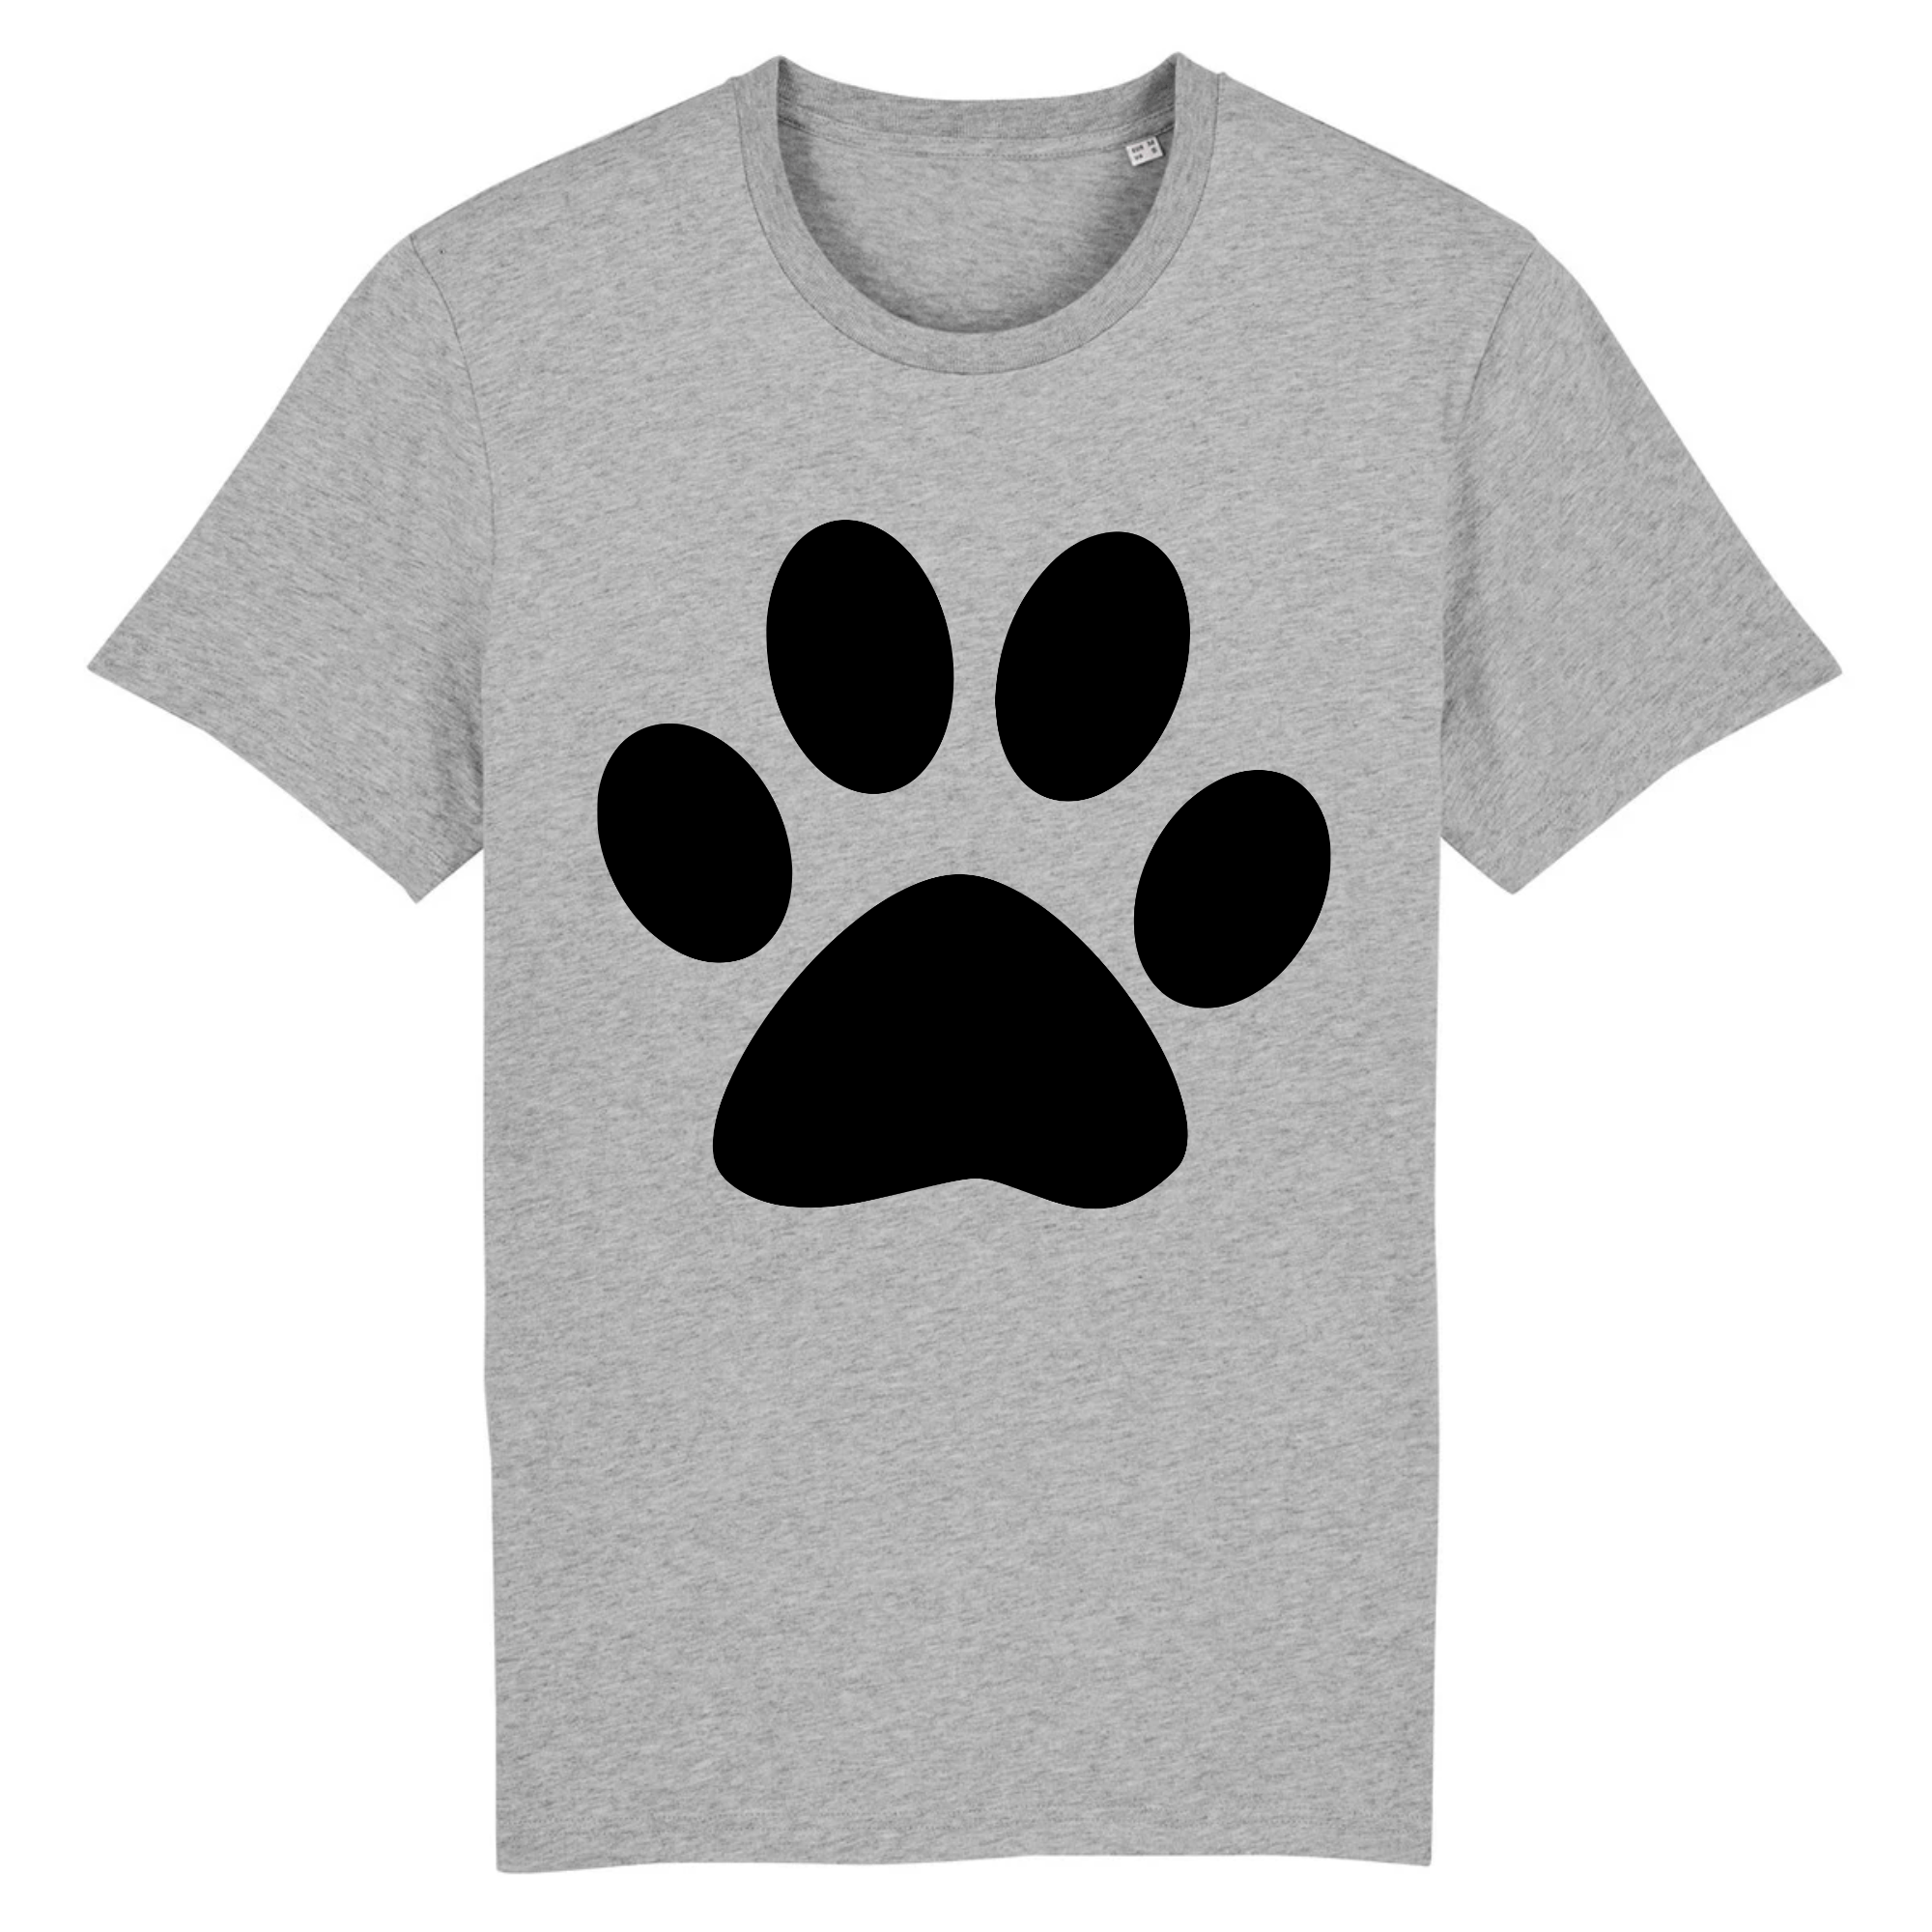 Tee-Shirt Patte de Chat